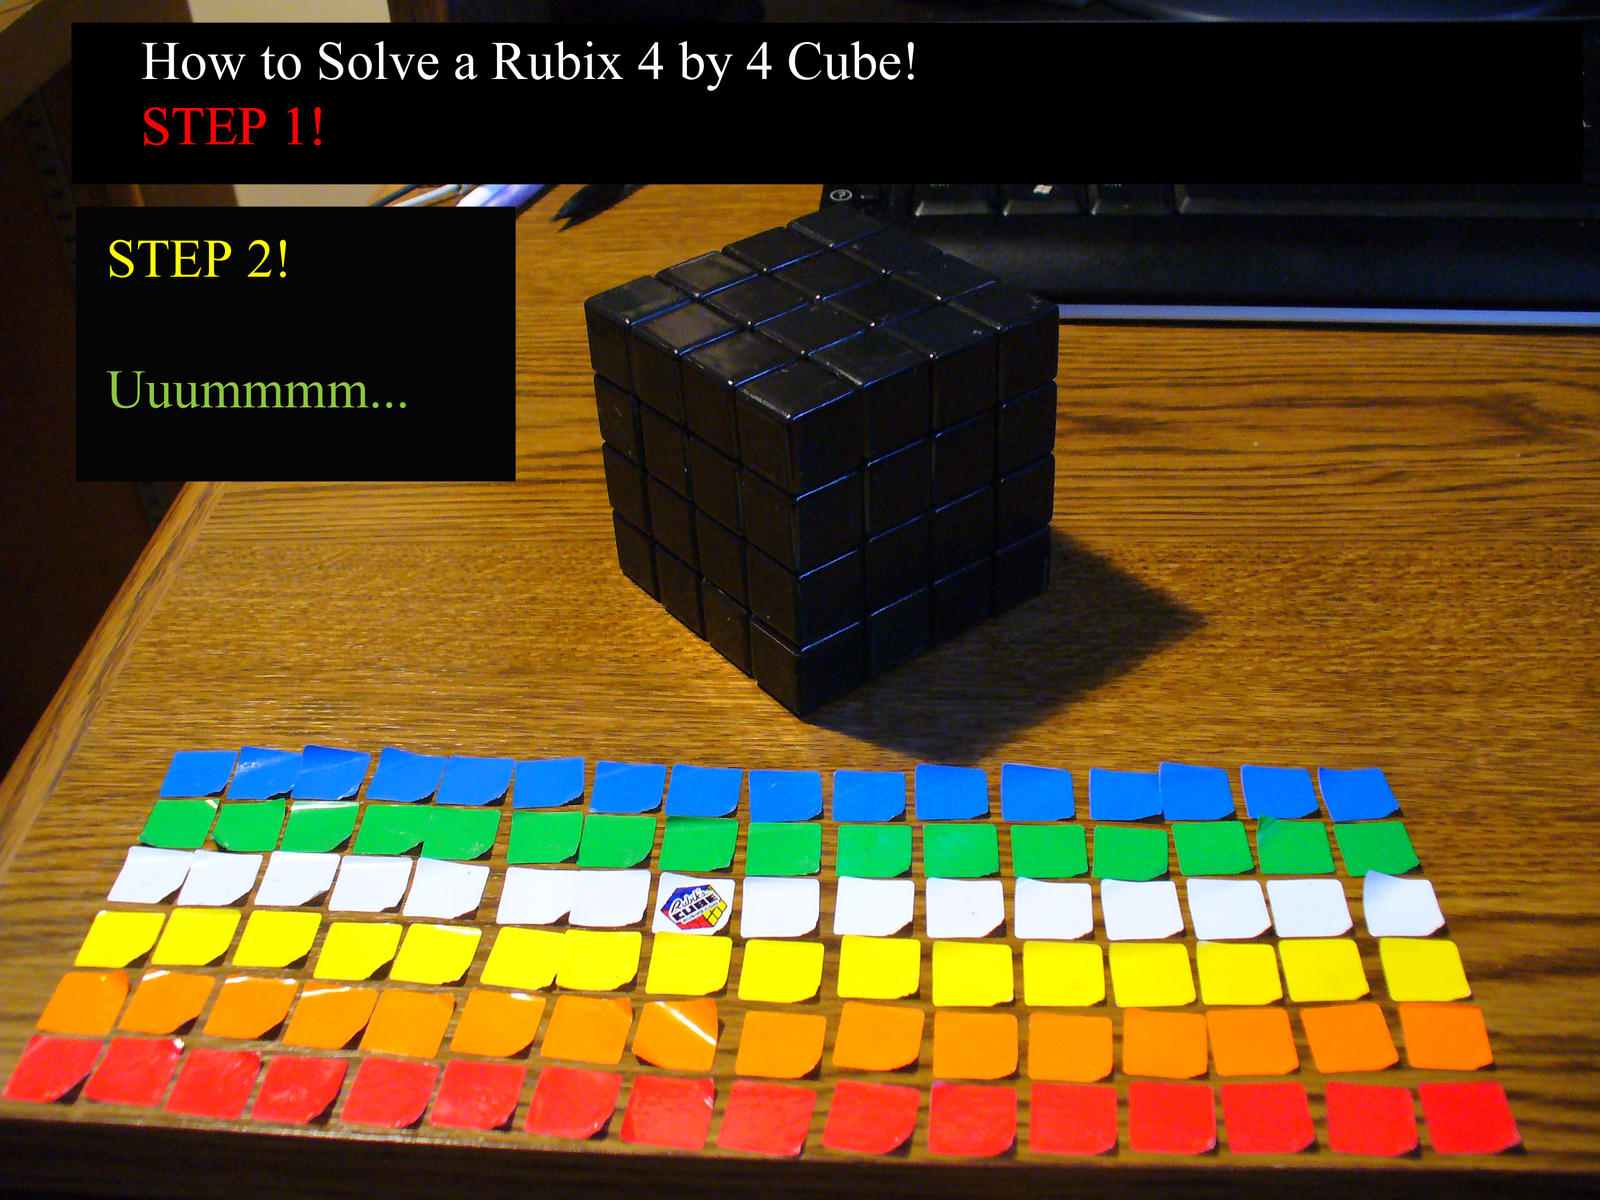 How To Solve A 4x4 Rubix Cube By Rasvashed